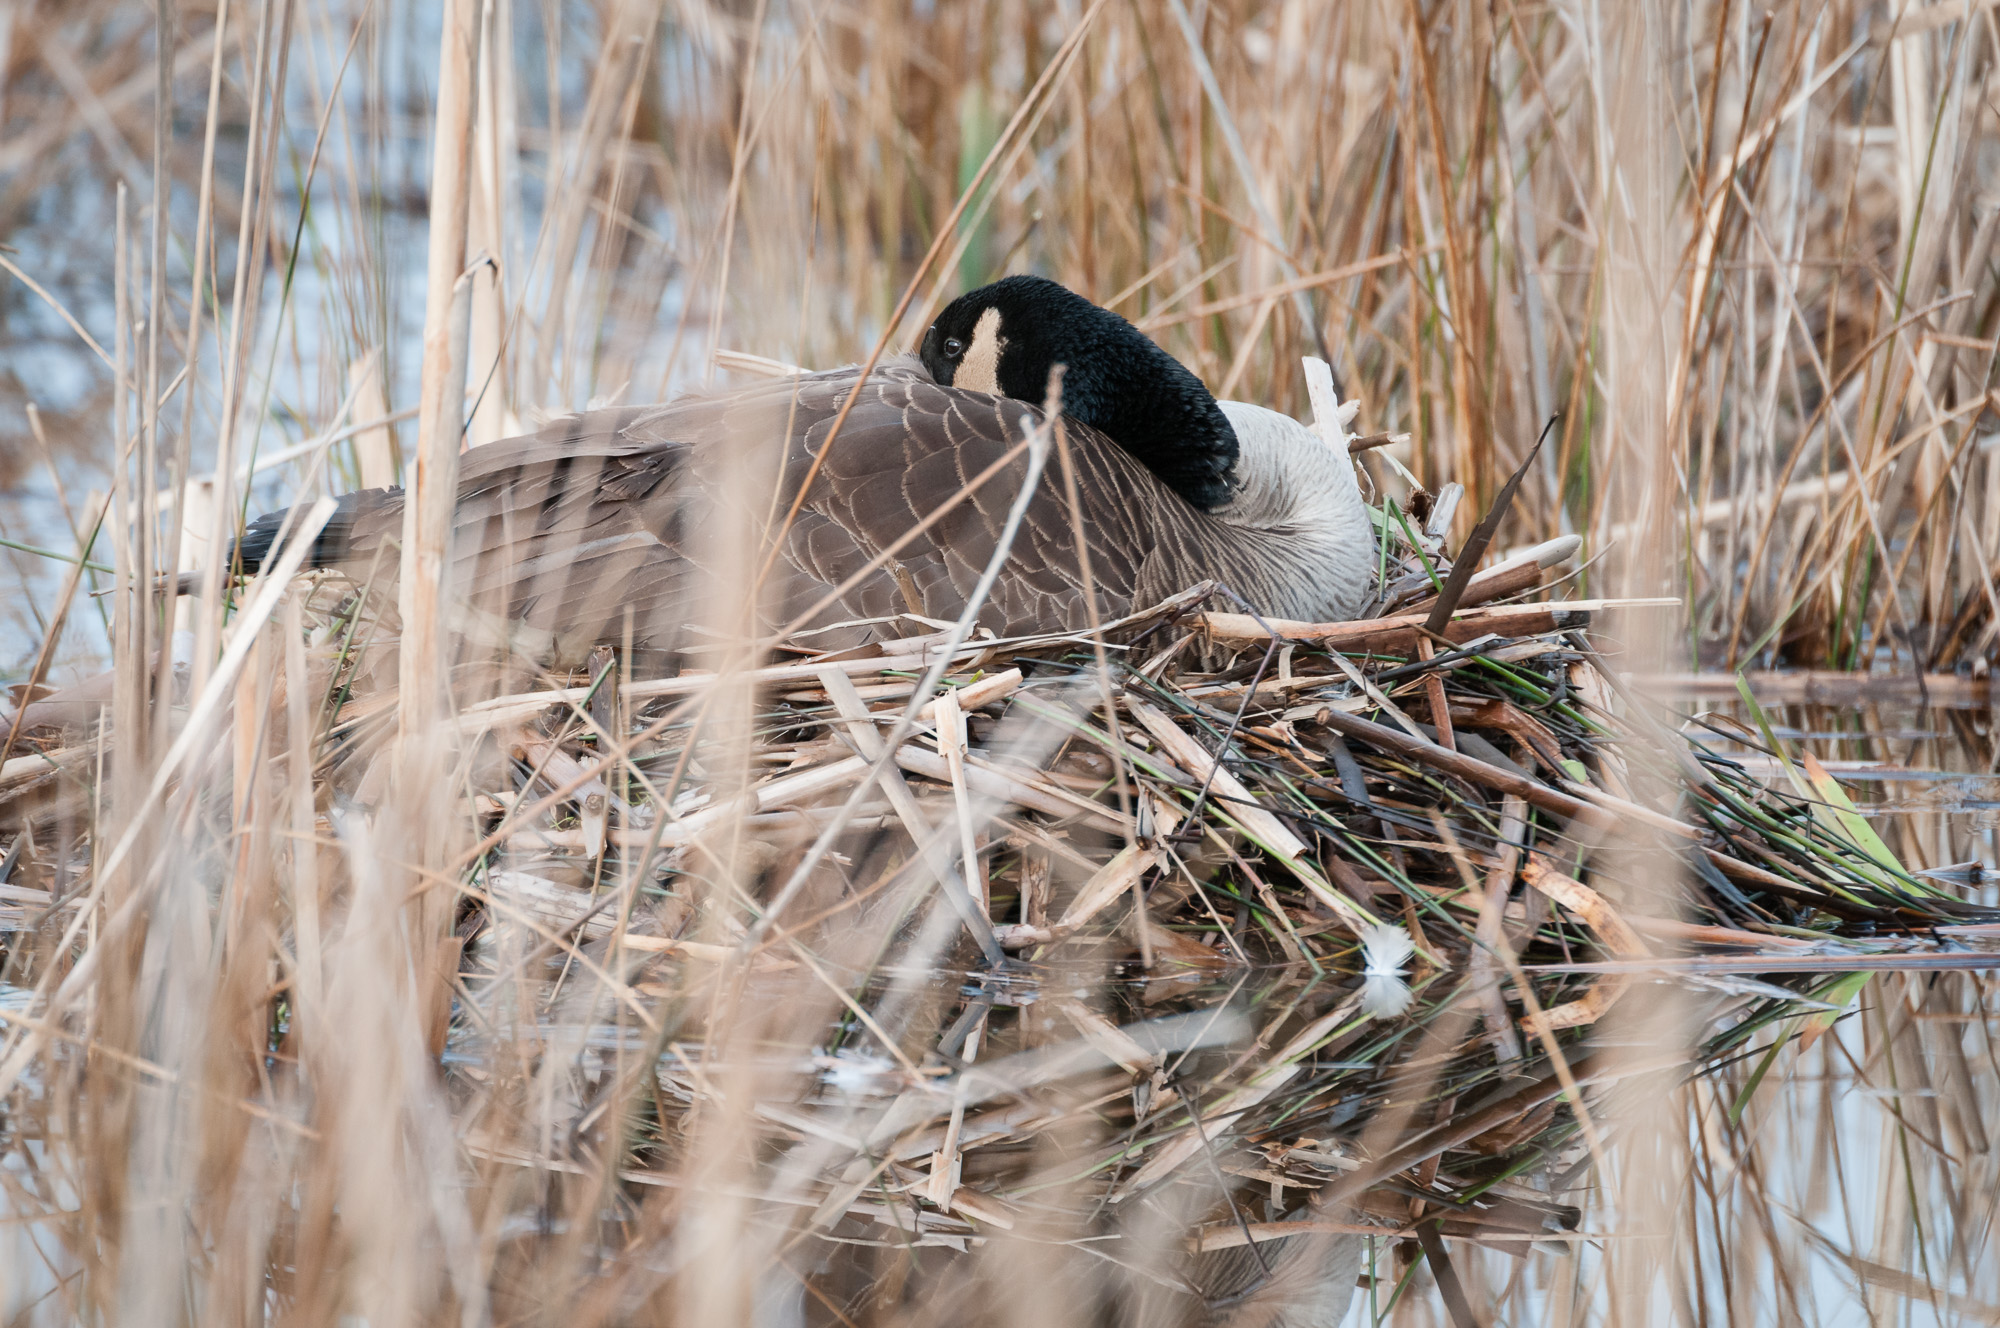 Mother Canada Goose resting on her nest